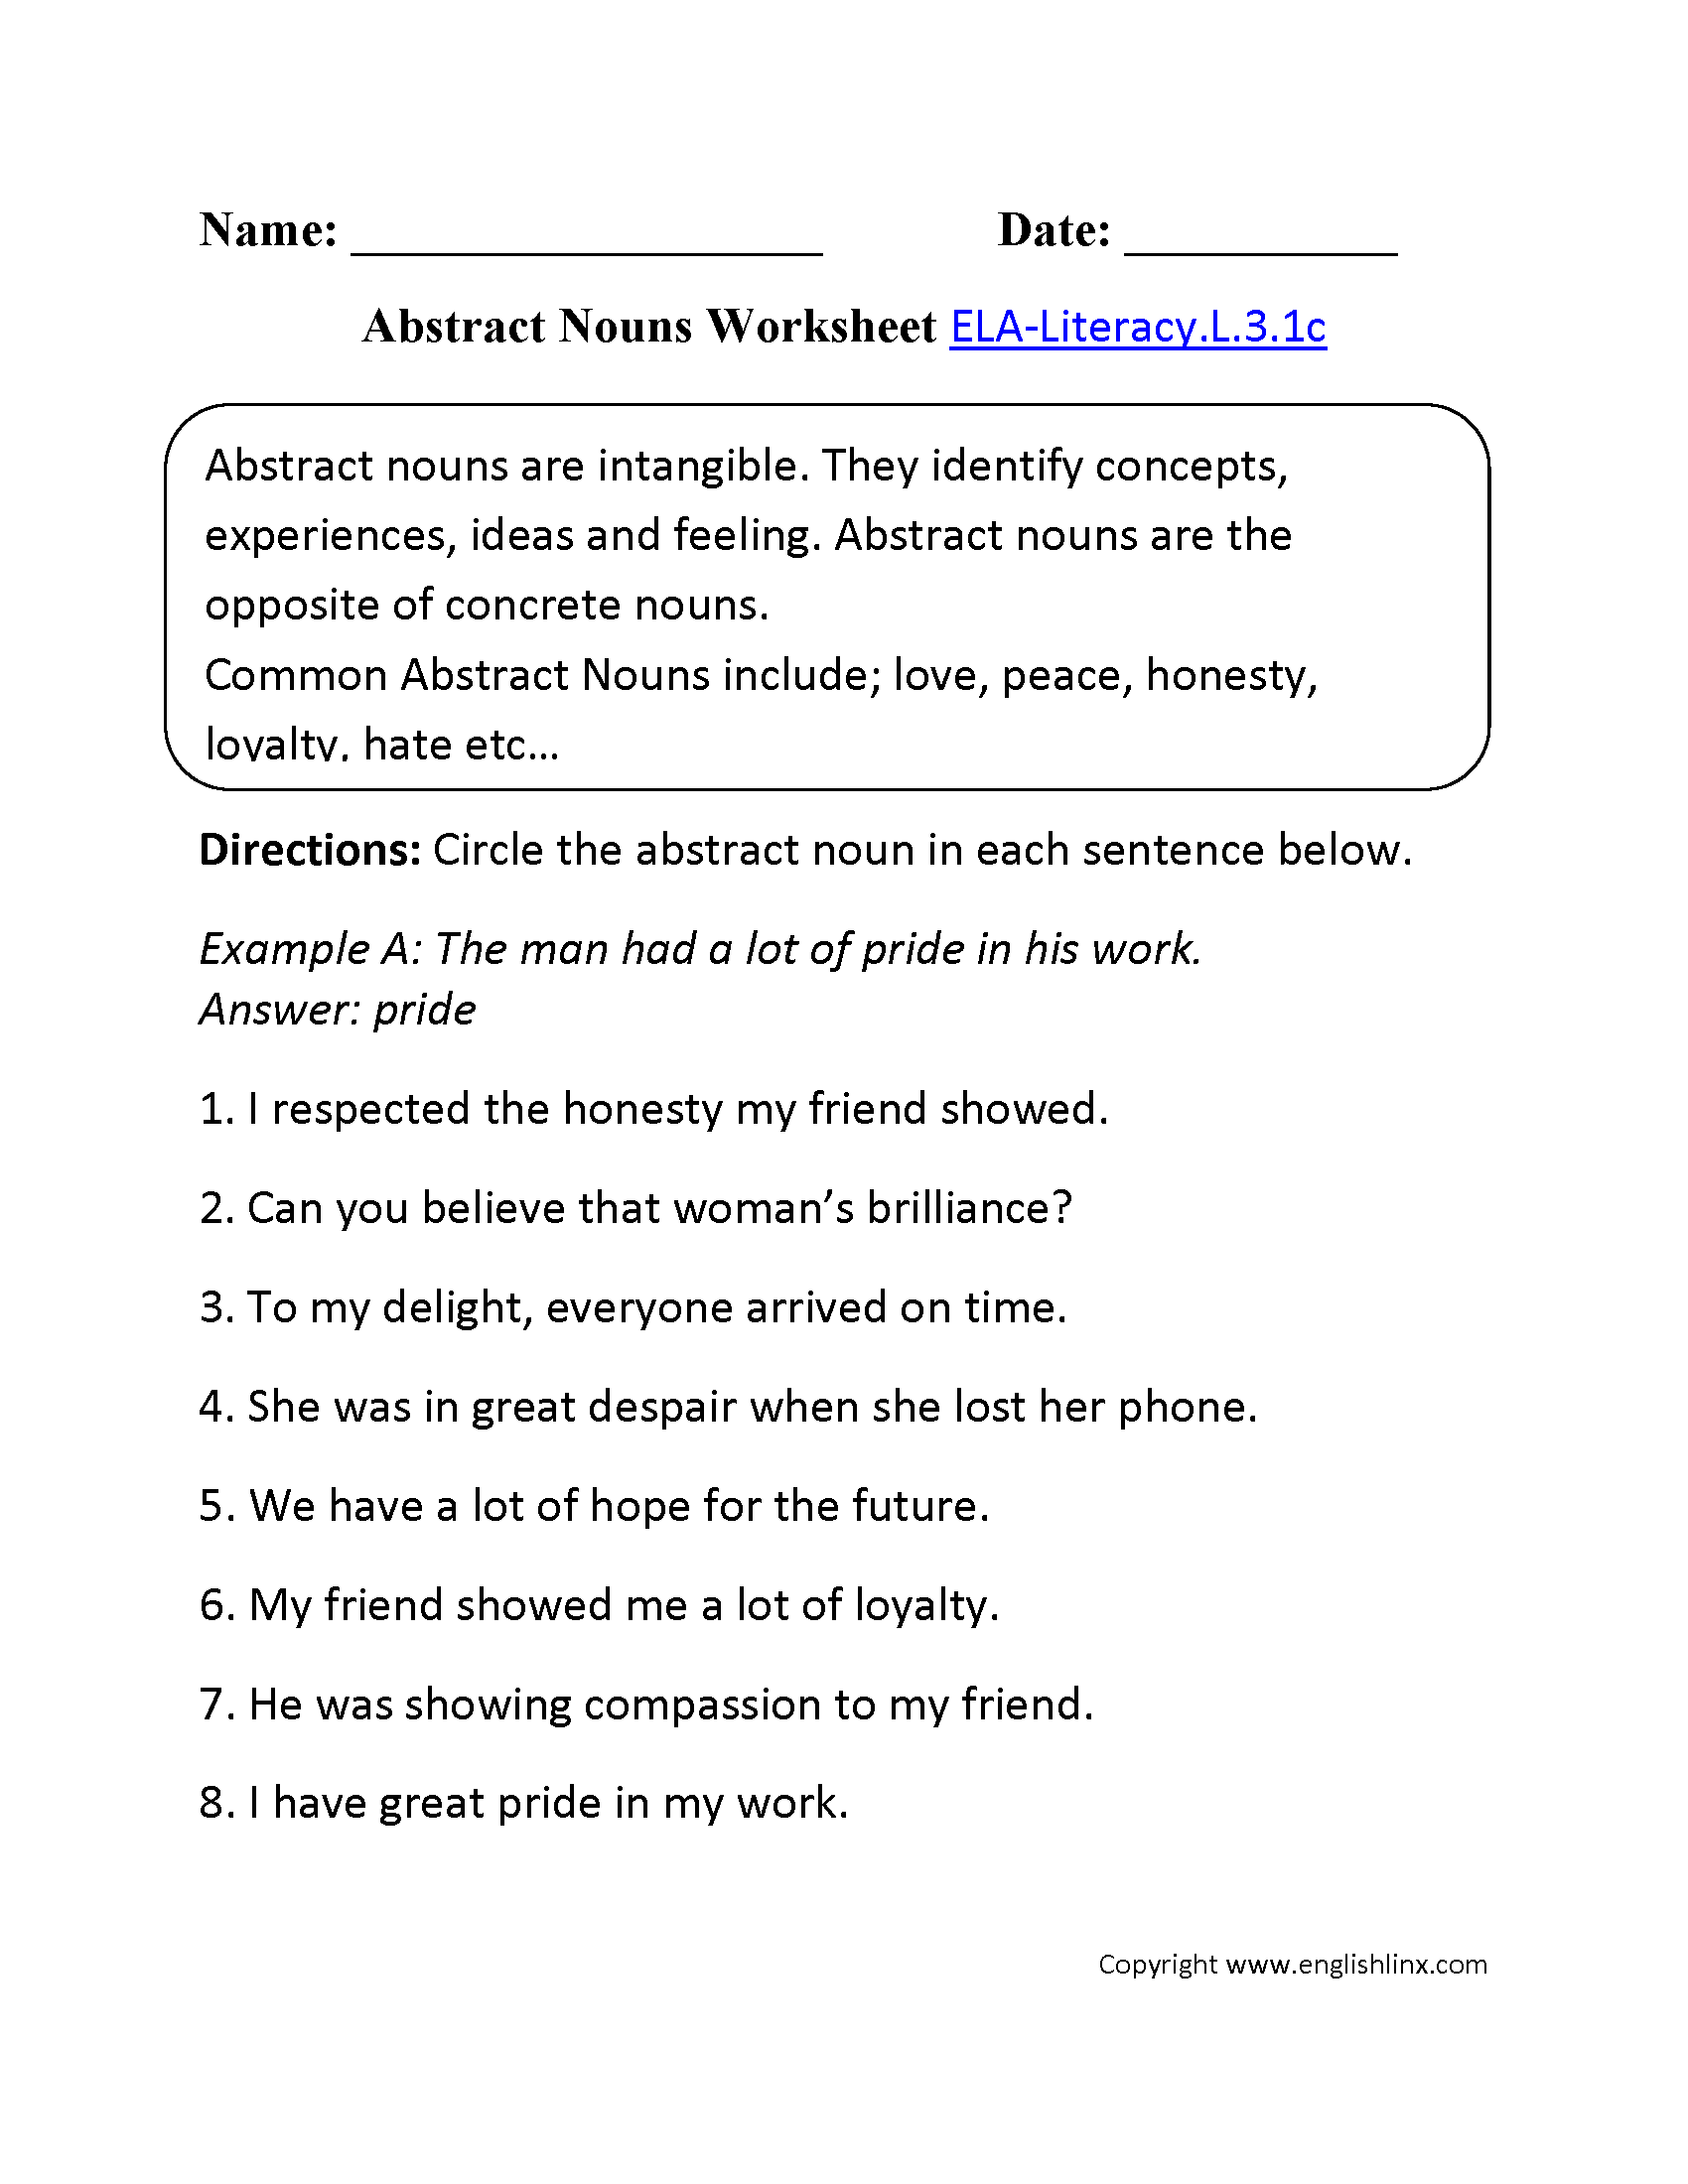 Abstract Nouns Worksheet 1 Ela Literacy L 3 1c Language Worksheet